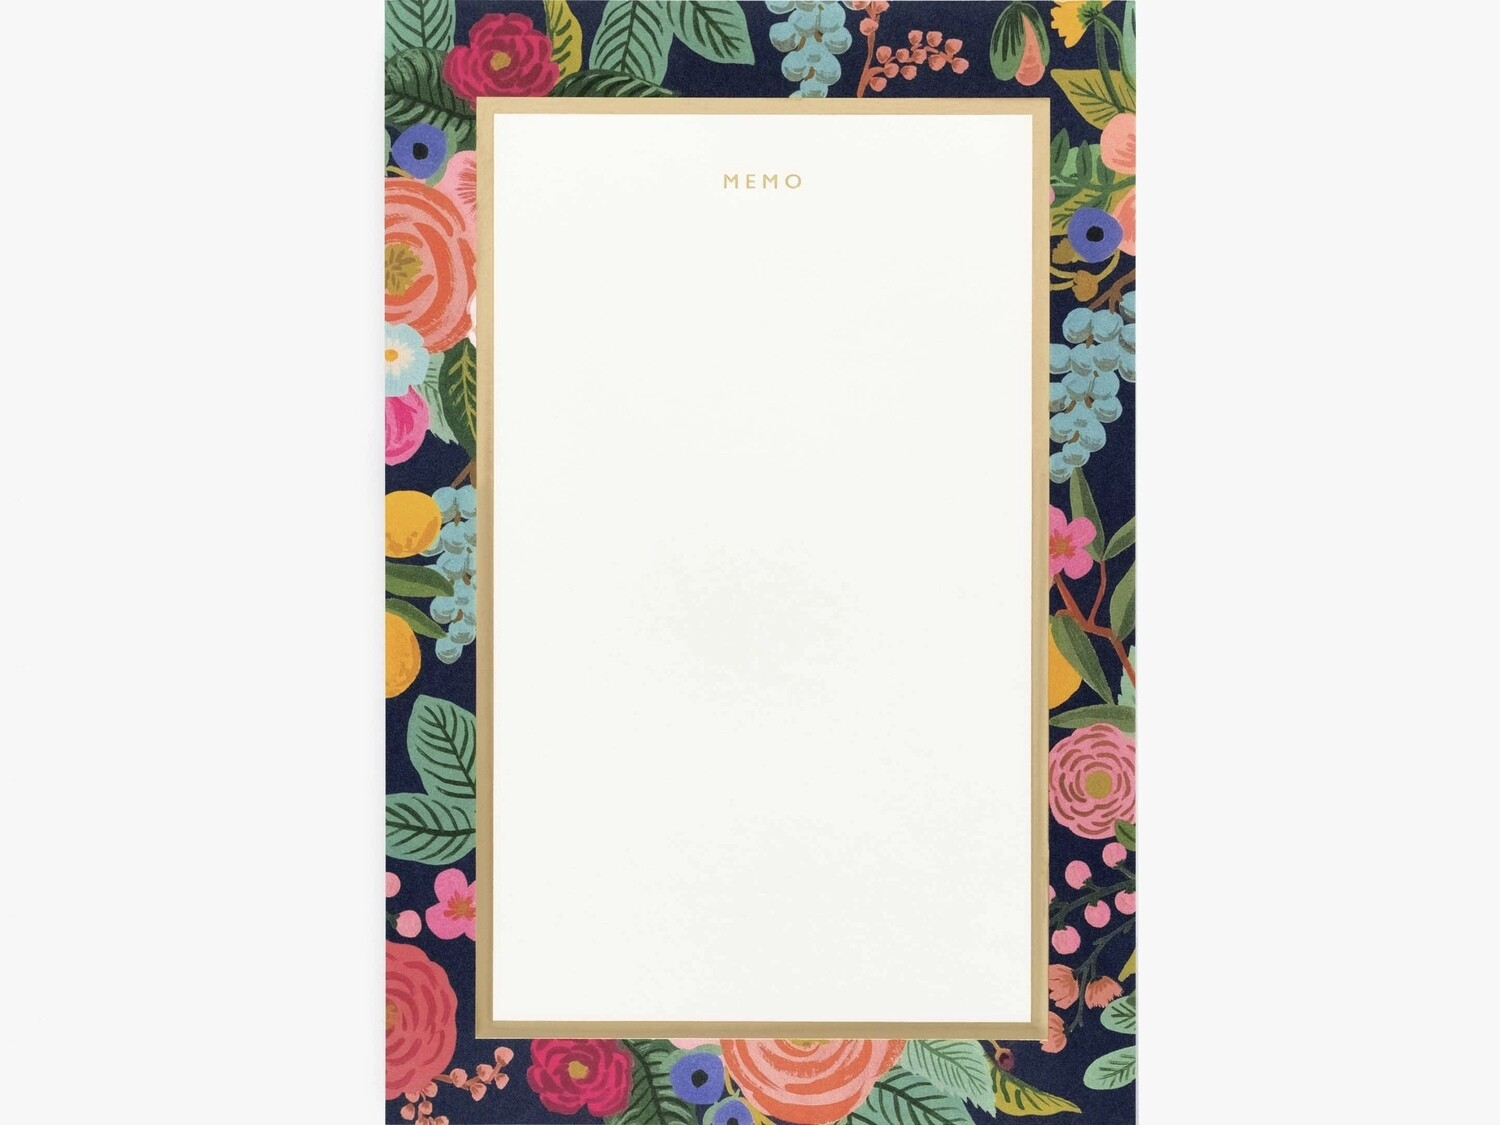 Garden Party Memo Note Pad - Rifle Paper Co. RPC16